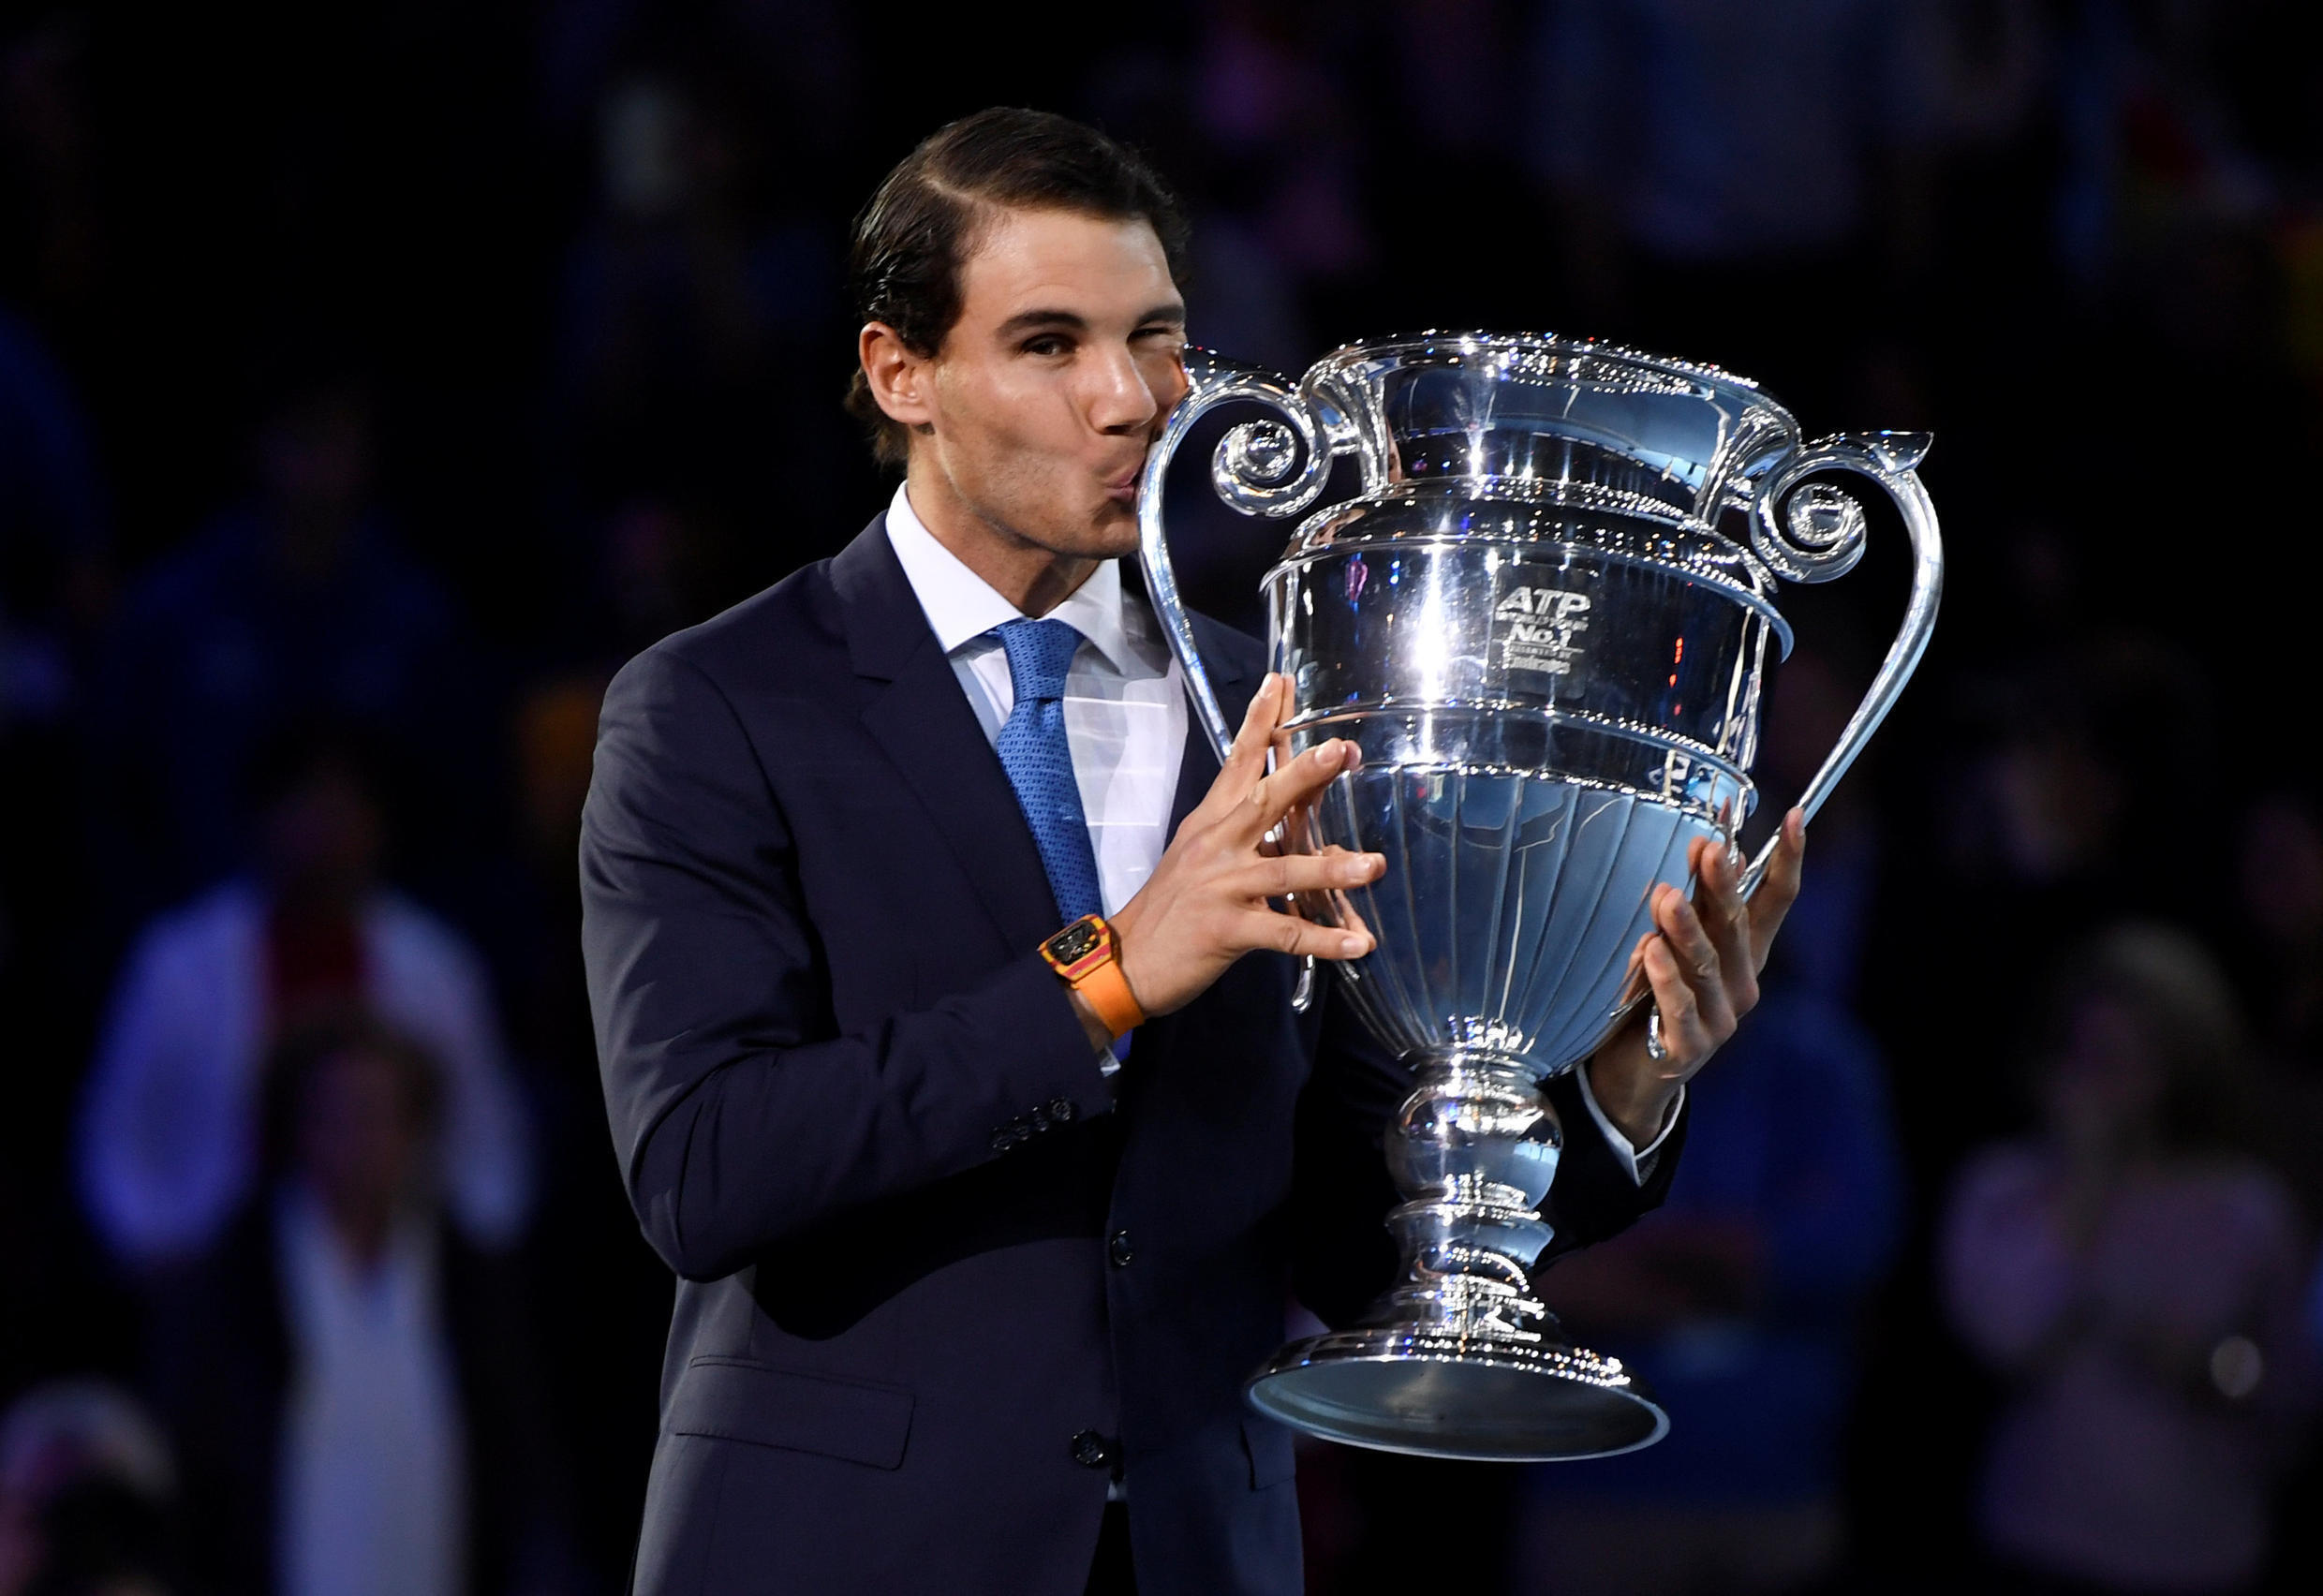 Rafael Nadal finished at the top of the rankings on 31 December in 2008, 2010, 2013 and 2017..